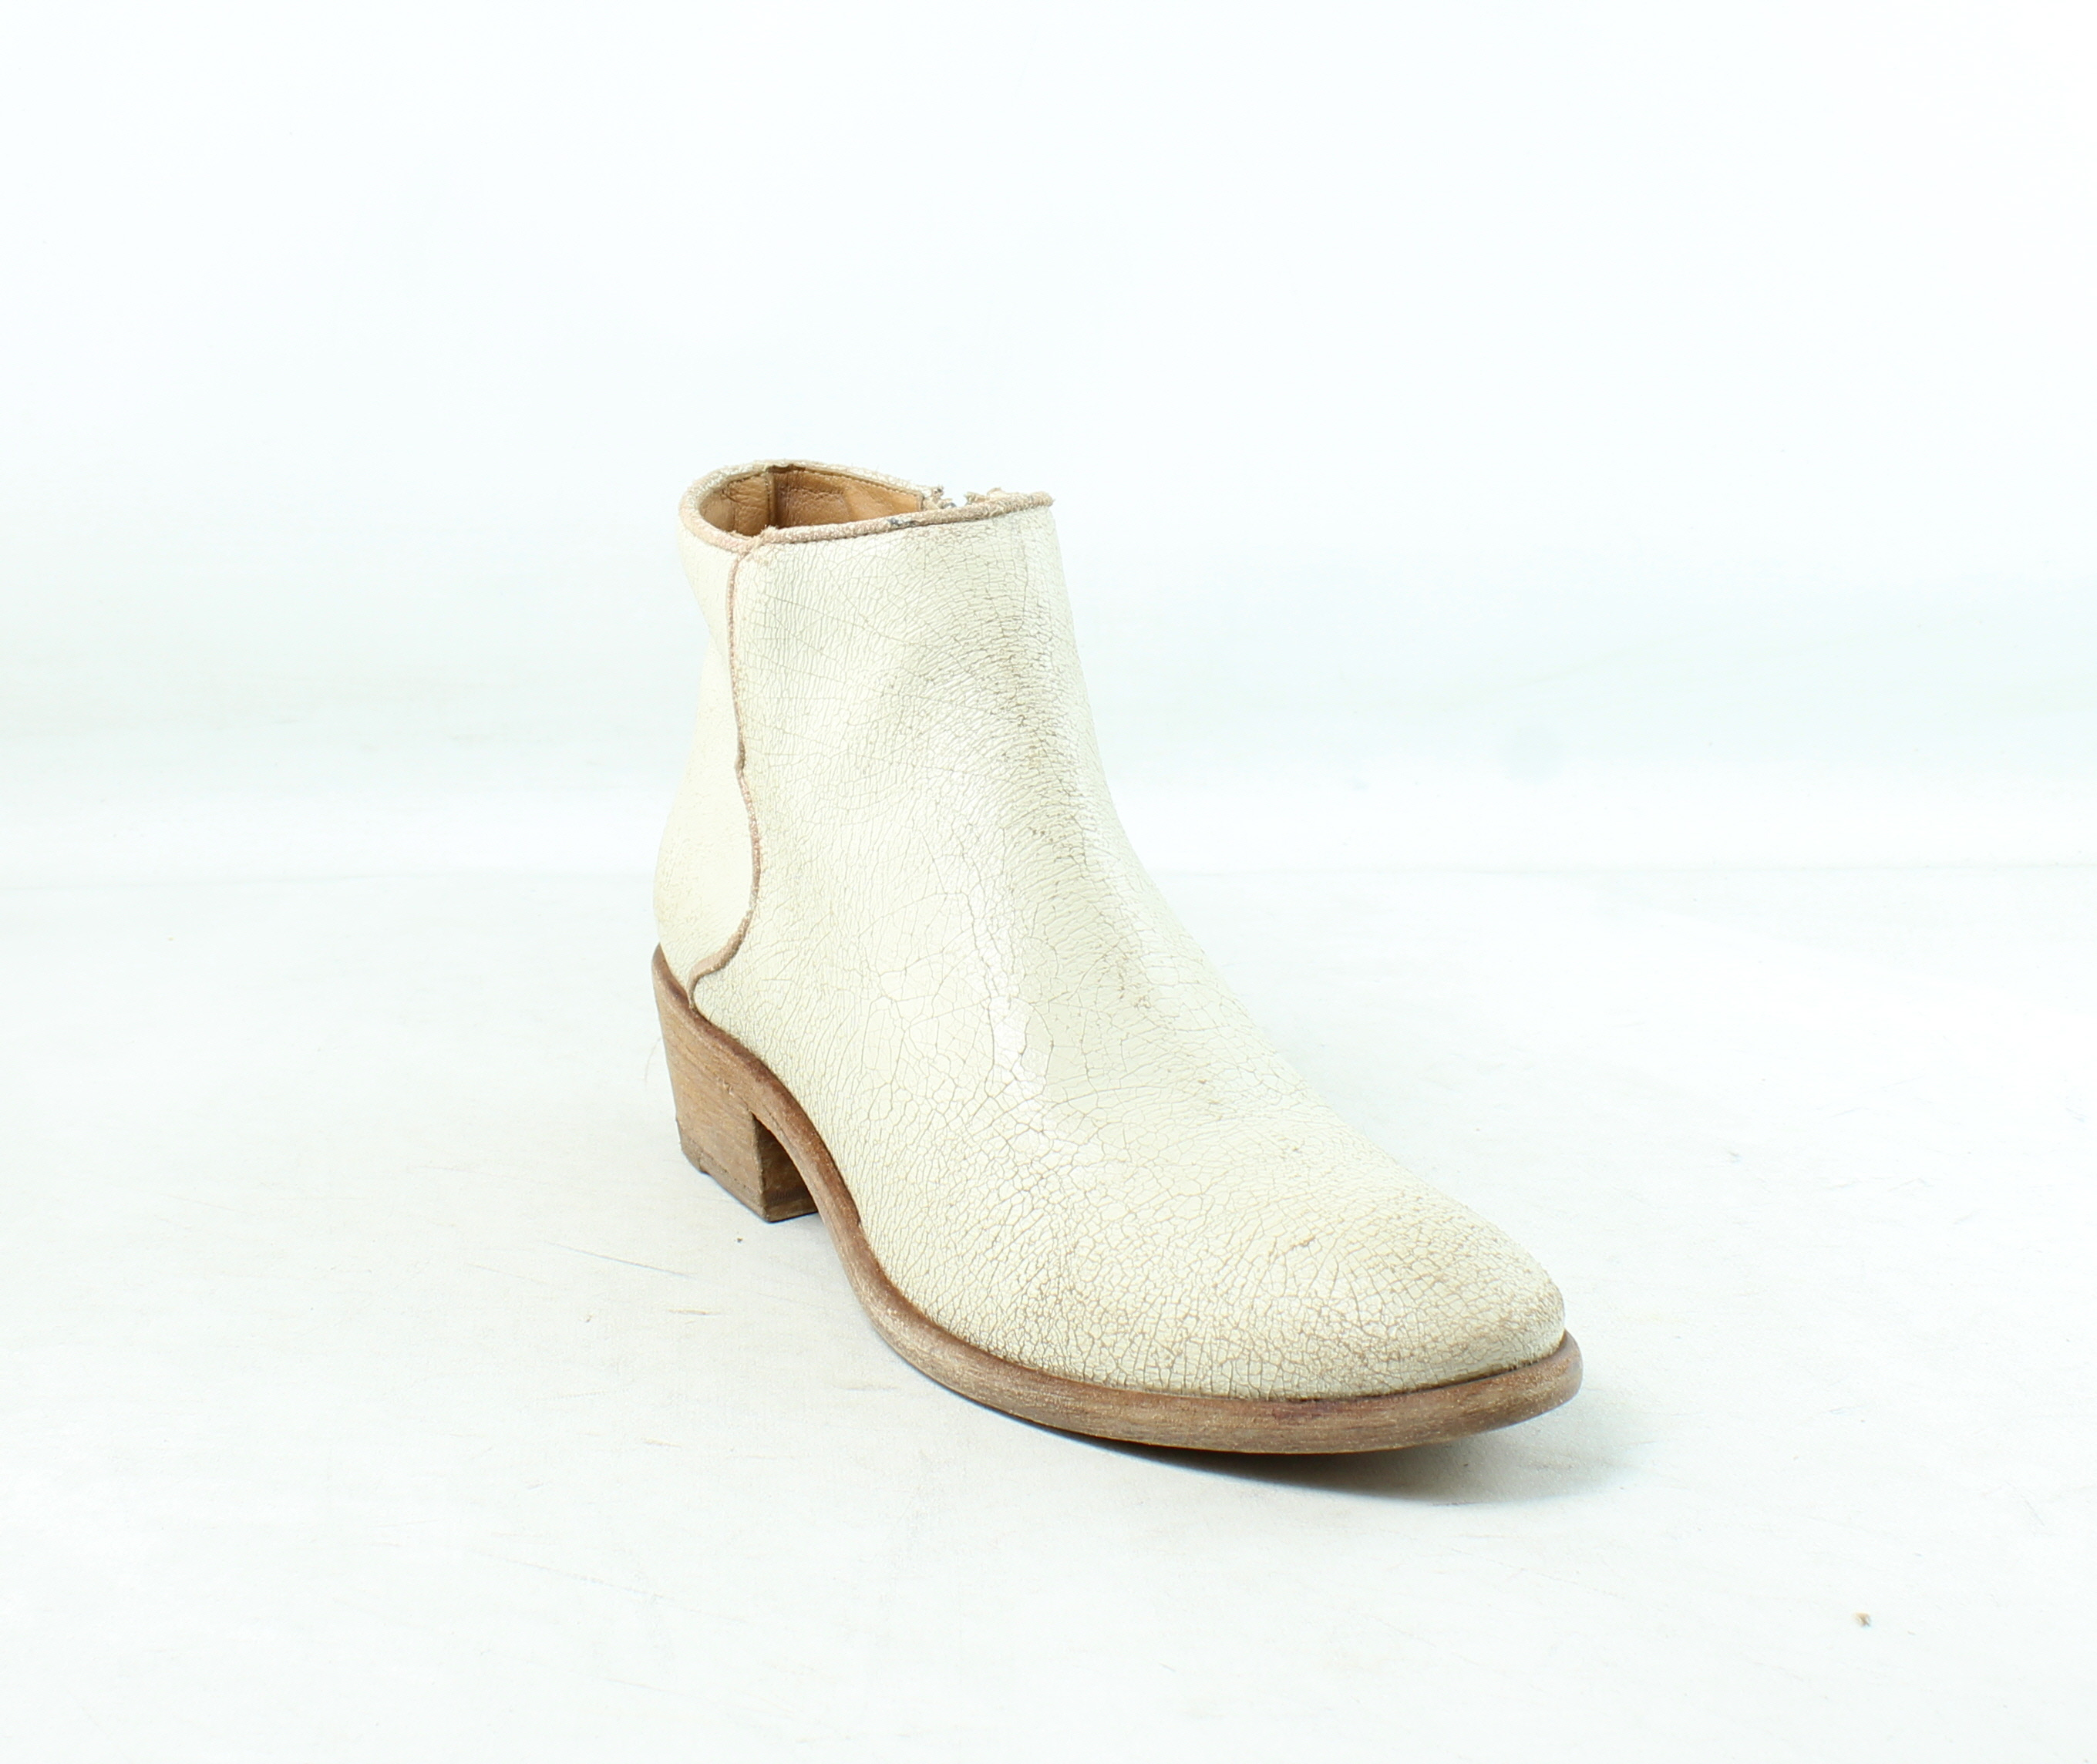 Frye Womens Carson Piping Off White Ankle Boots Size 7.5 ...